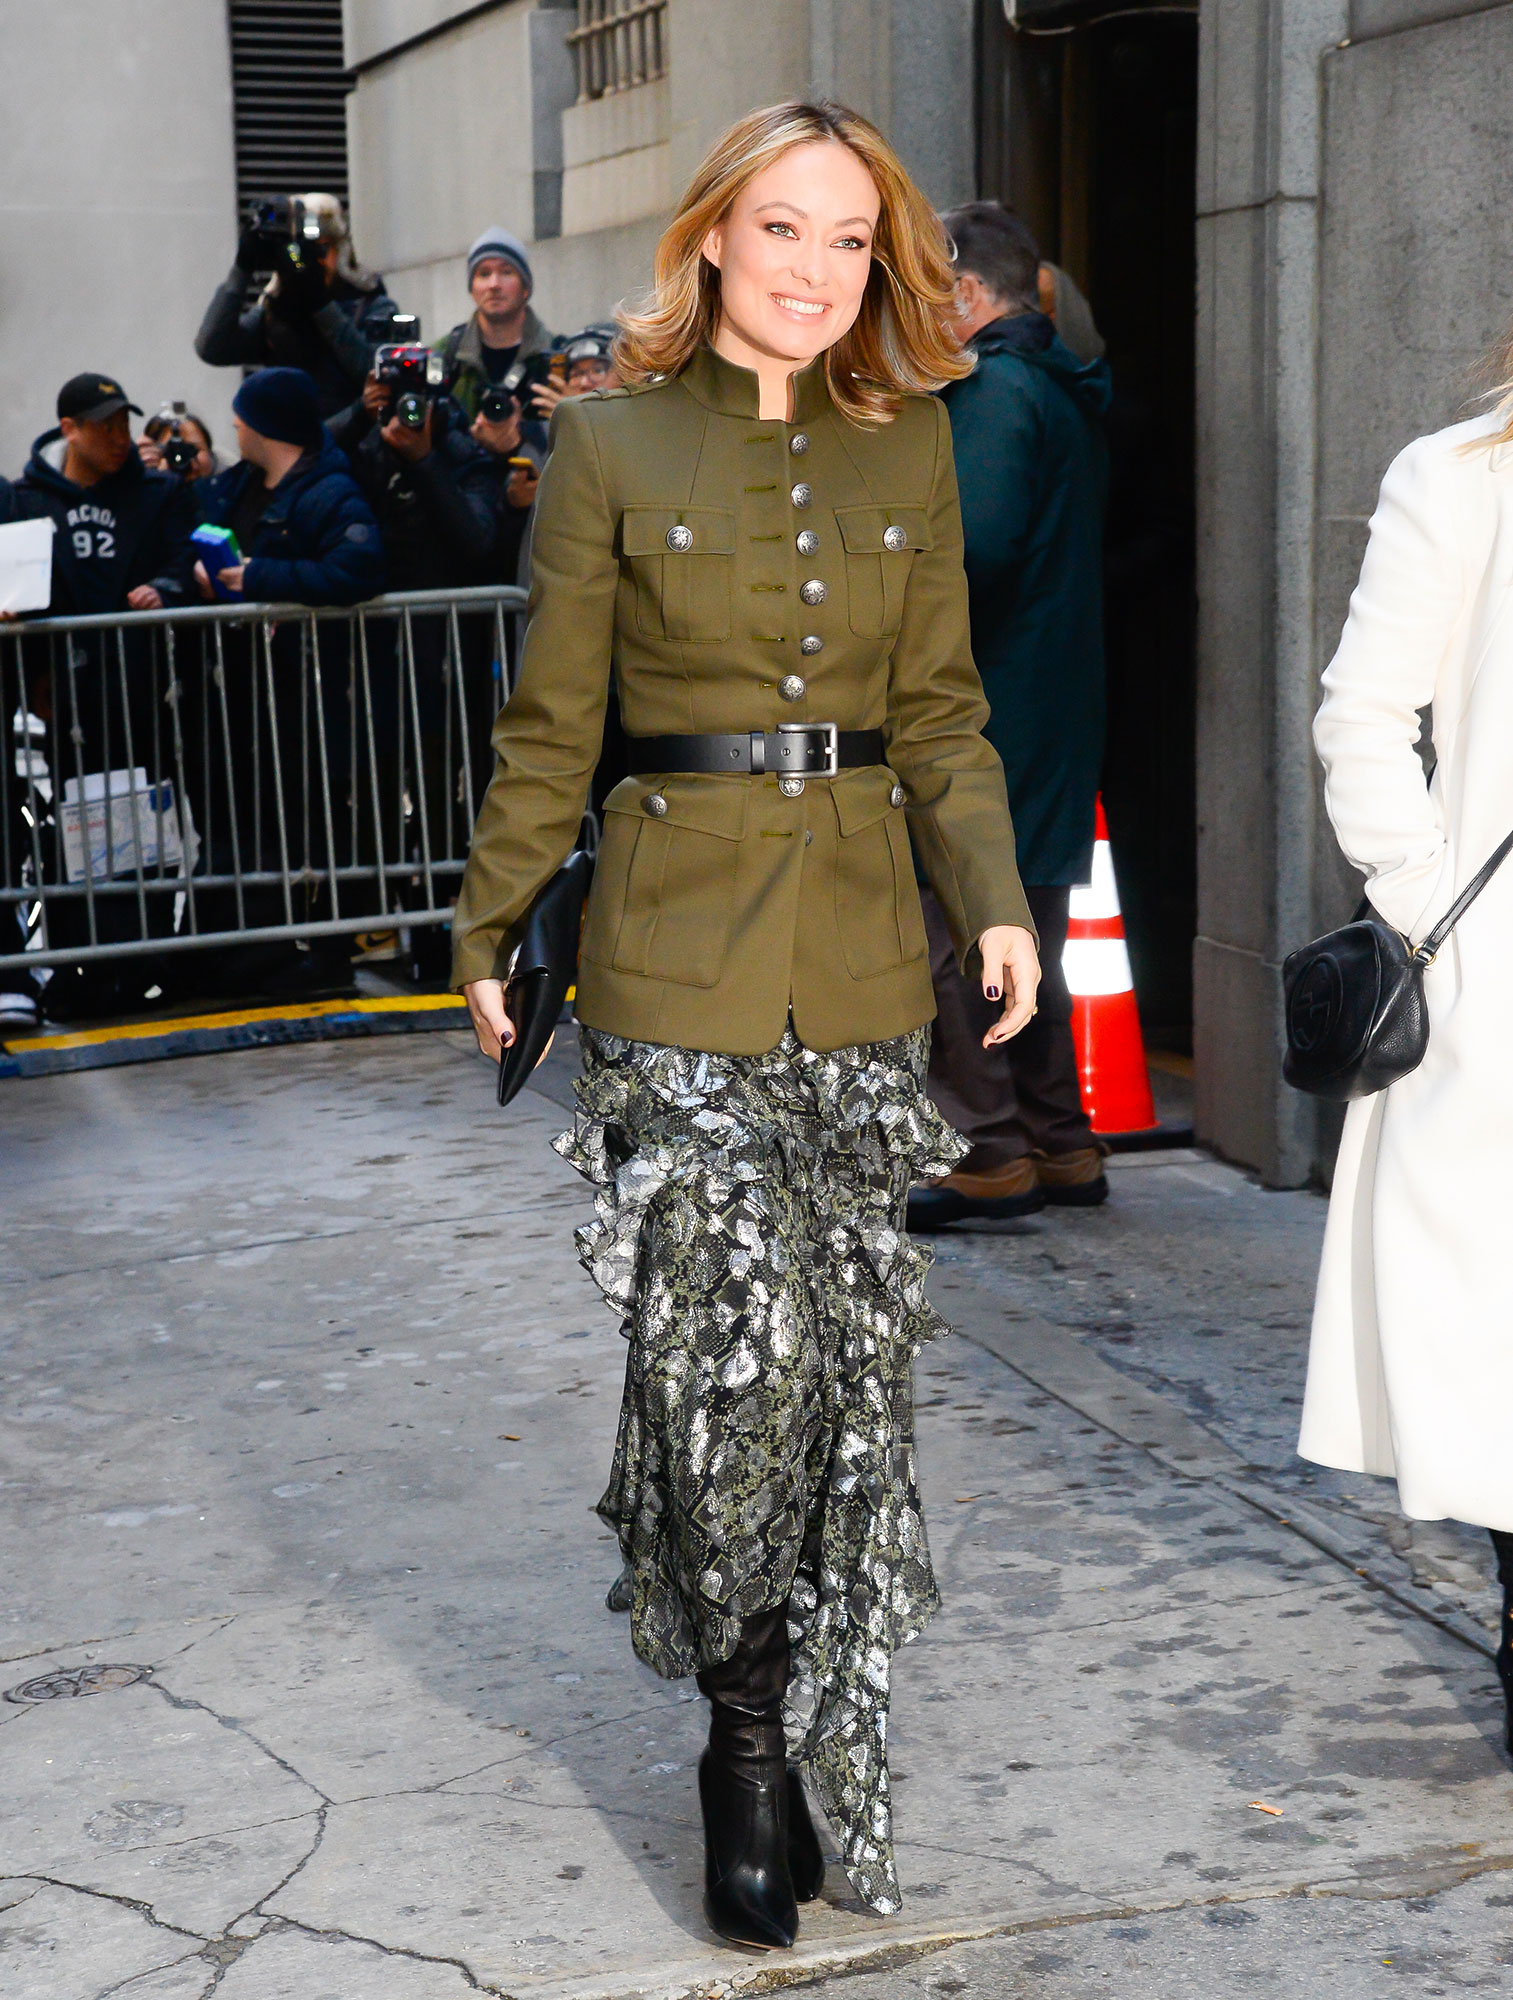 Olivia Wilde nyfw new york fashion week - Giving Us military vibes, the actress wore an ultra-cool olive green jacket over a ruffled silk skirt and black leather boots to the Michael Kors show on February 13.